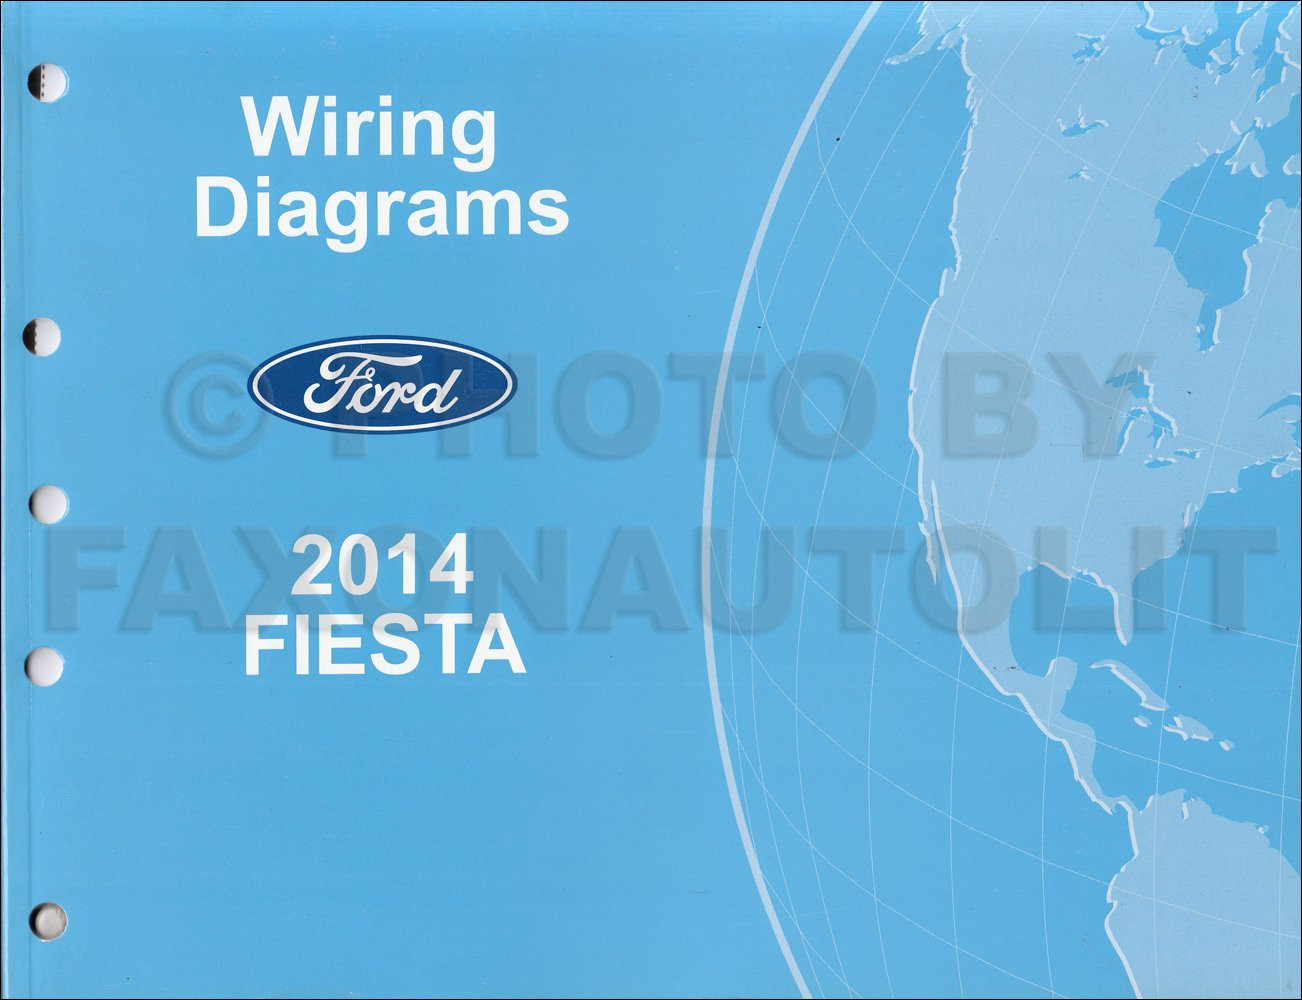 2014 Ford Fiesta Wiring Diagram from images-na.ssl-images-amazon.com